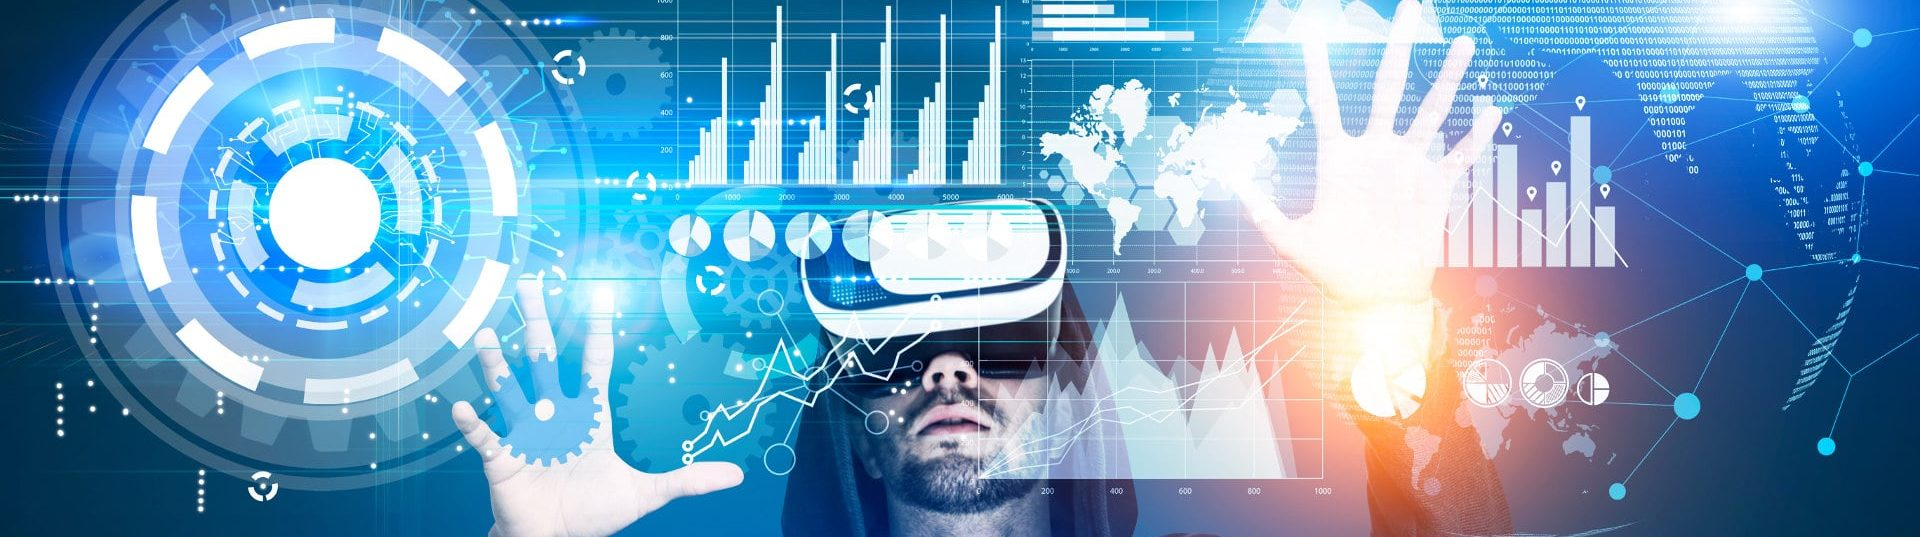 Virtual-Reality-Marketing-VR-Onliners